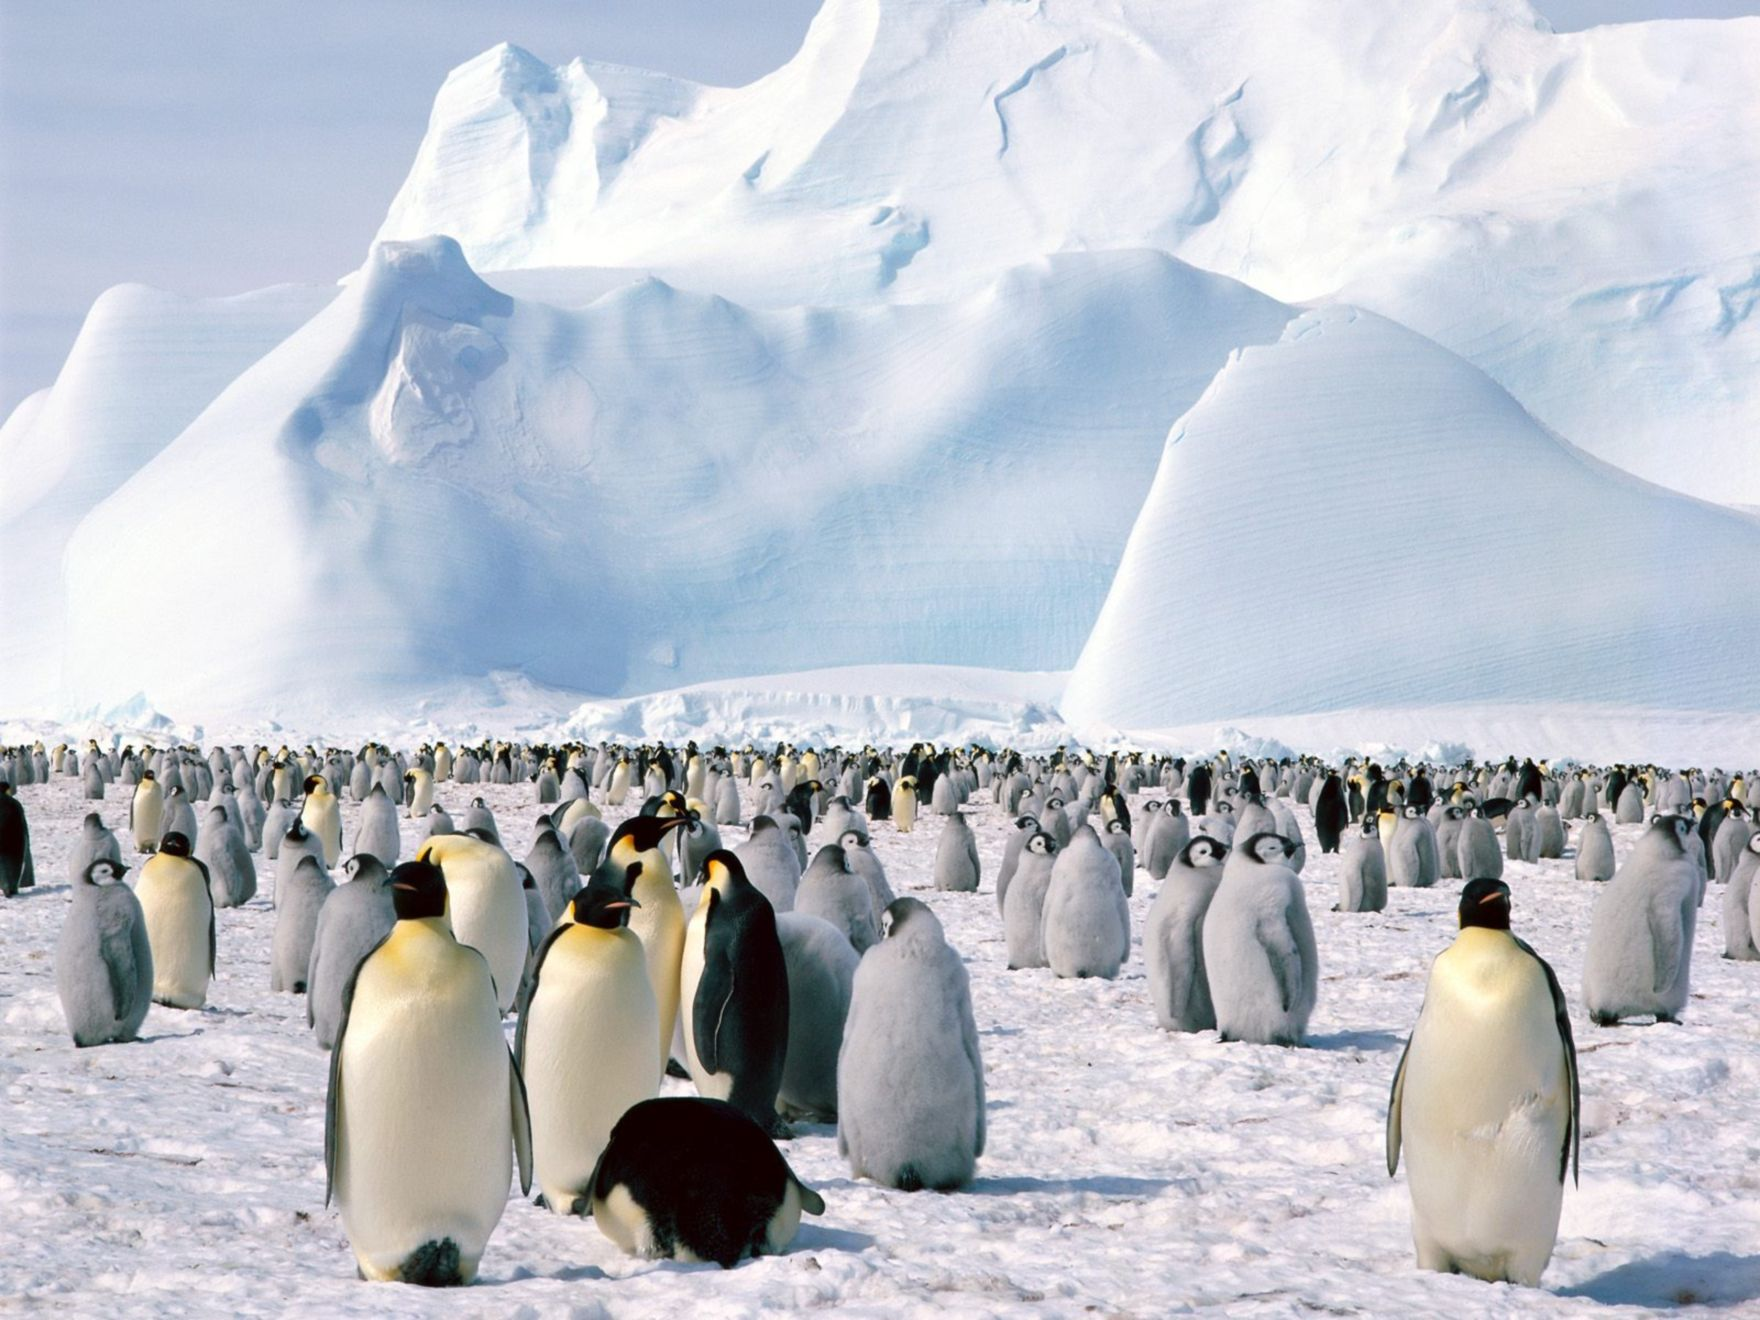 Download free HD Emperor Penguins Antarctica Normal Wallpaper, image